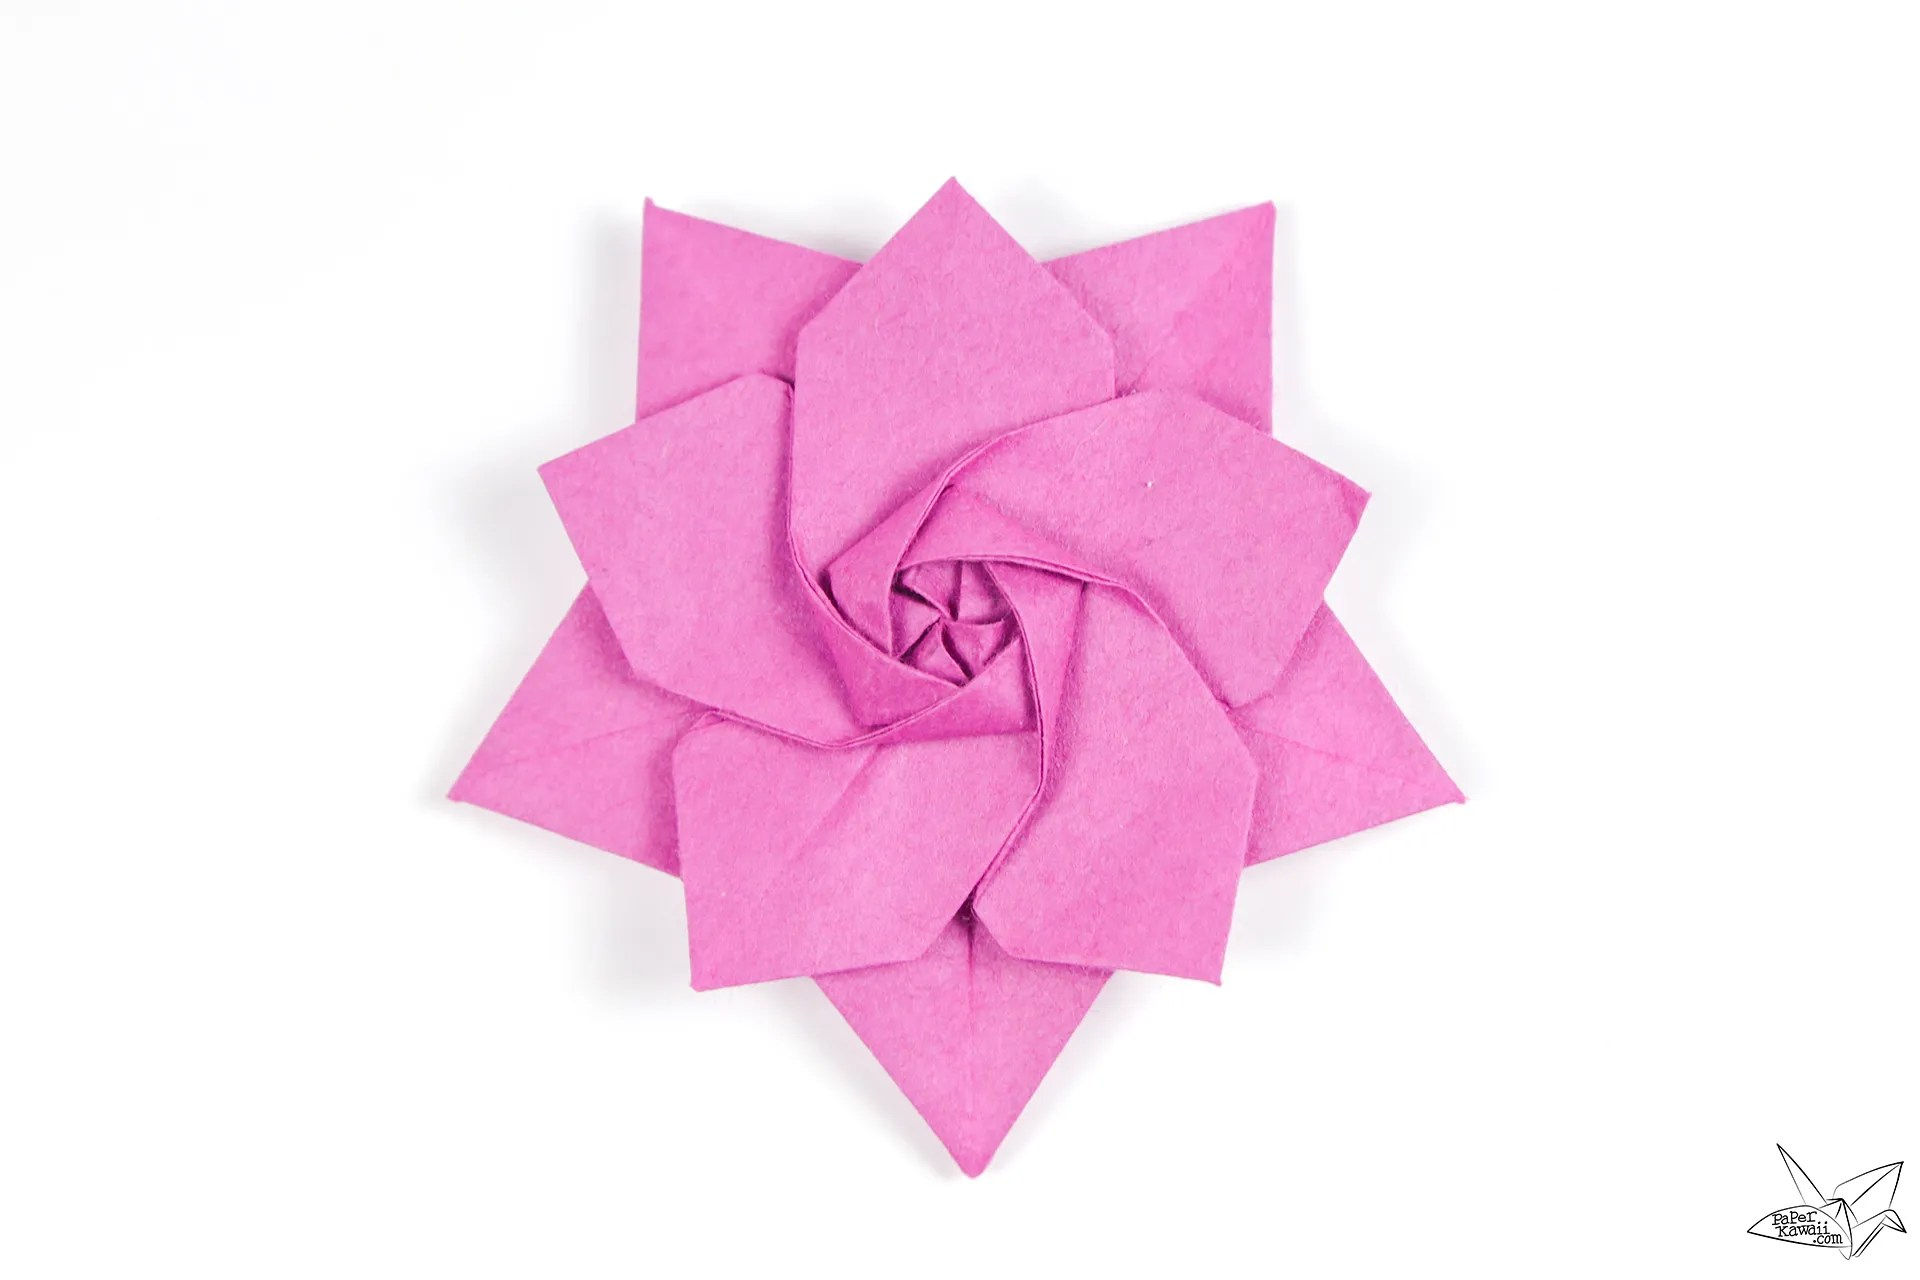 Origami Sakura Star Tutorial - Designed by Ali Bahmani